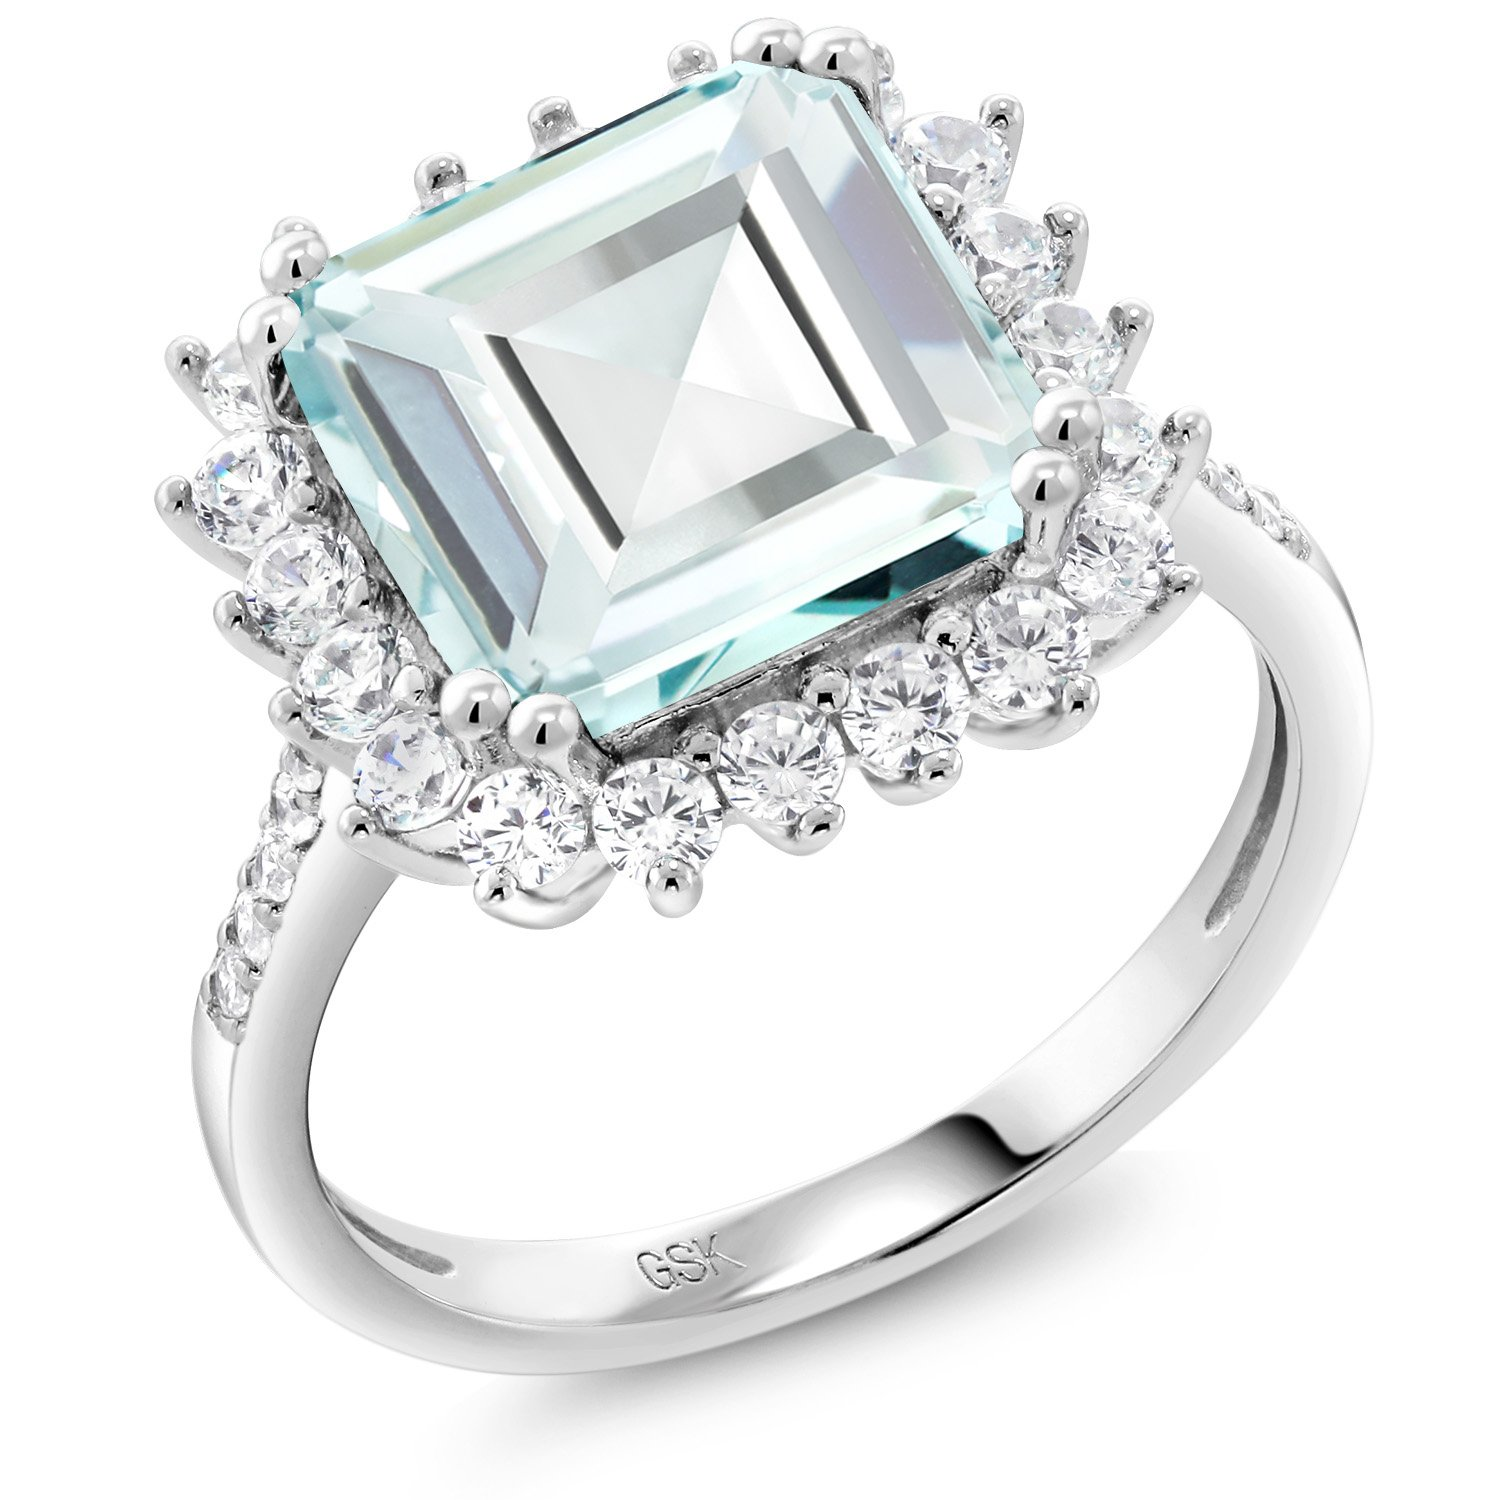 925 Sterling Silver Sky Blue Simulated Aquamarine Women's Ring 4.83 Ct Octagon Cut (Size 7)